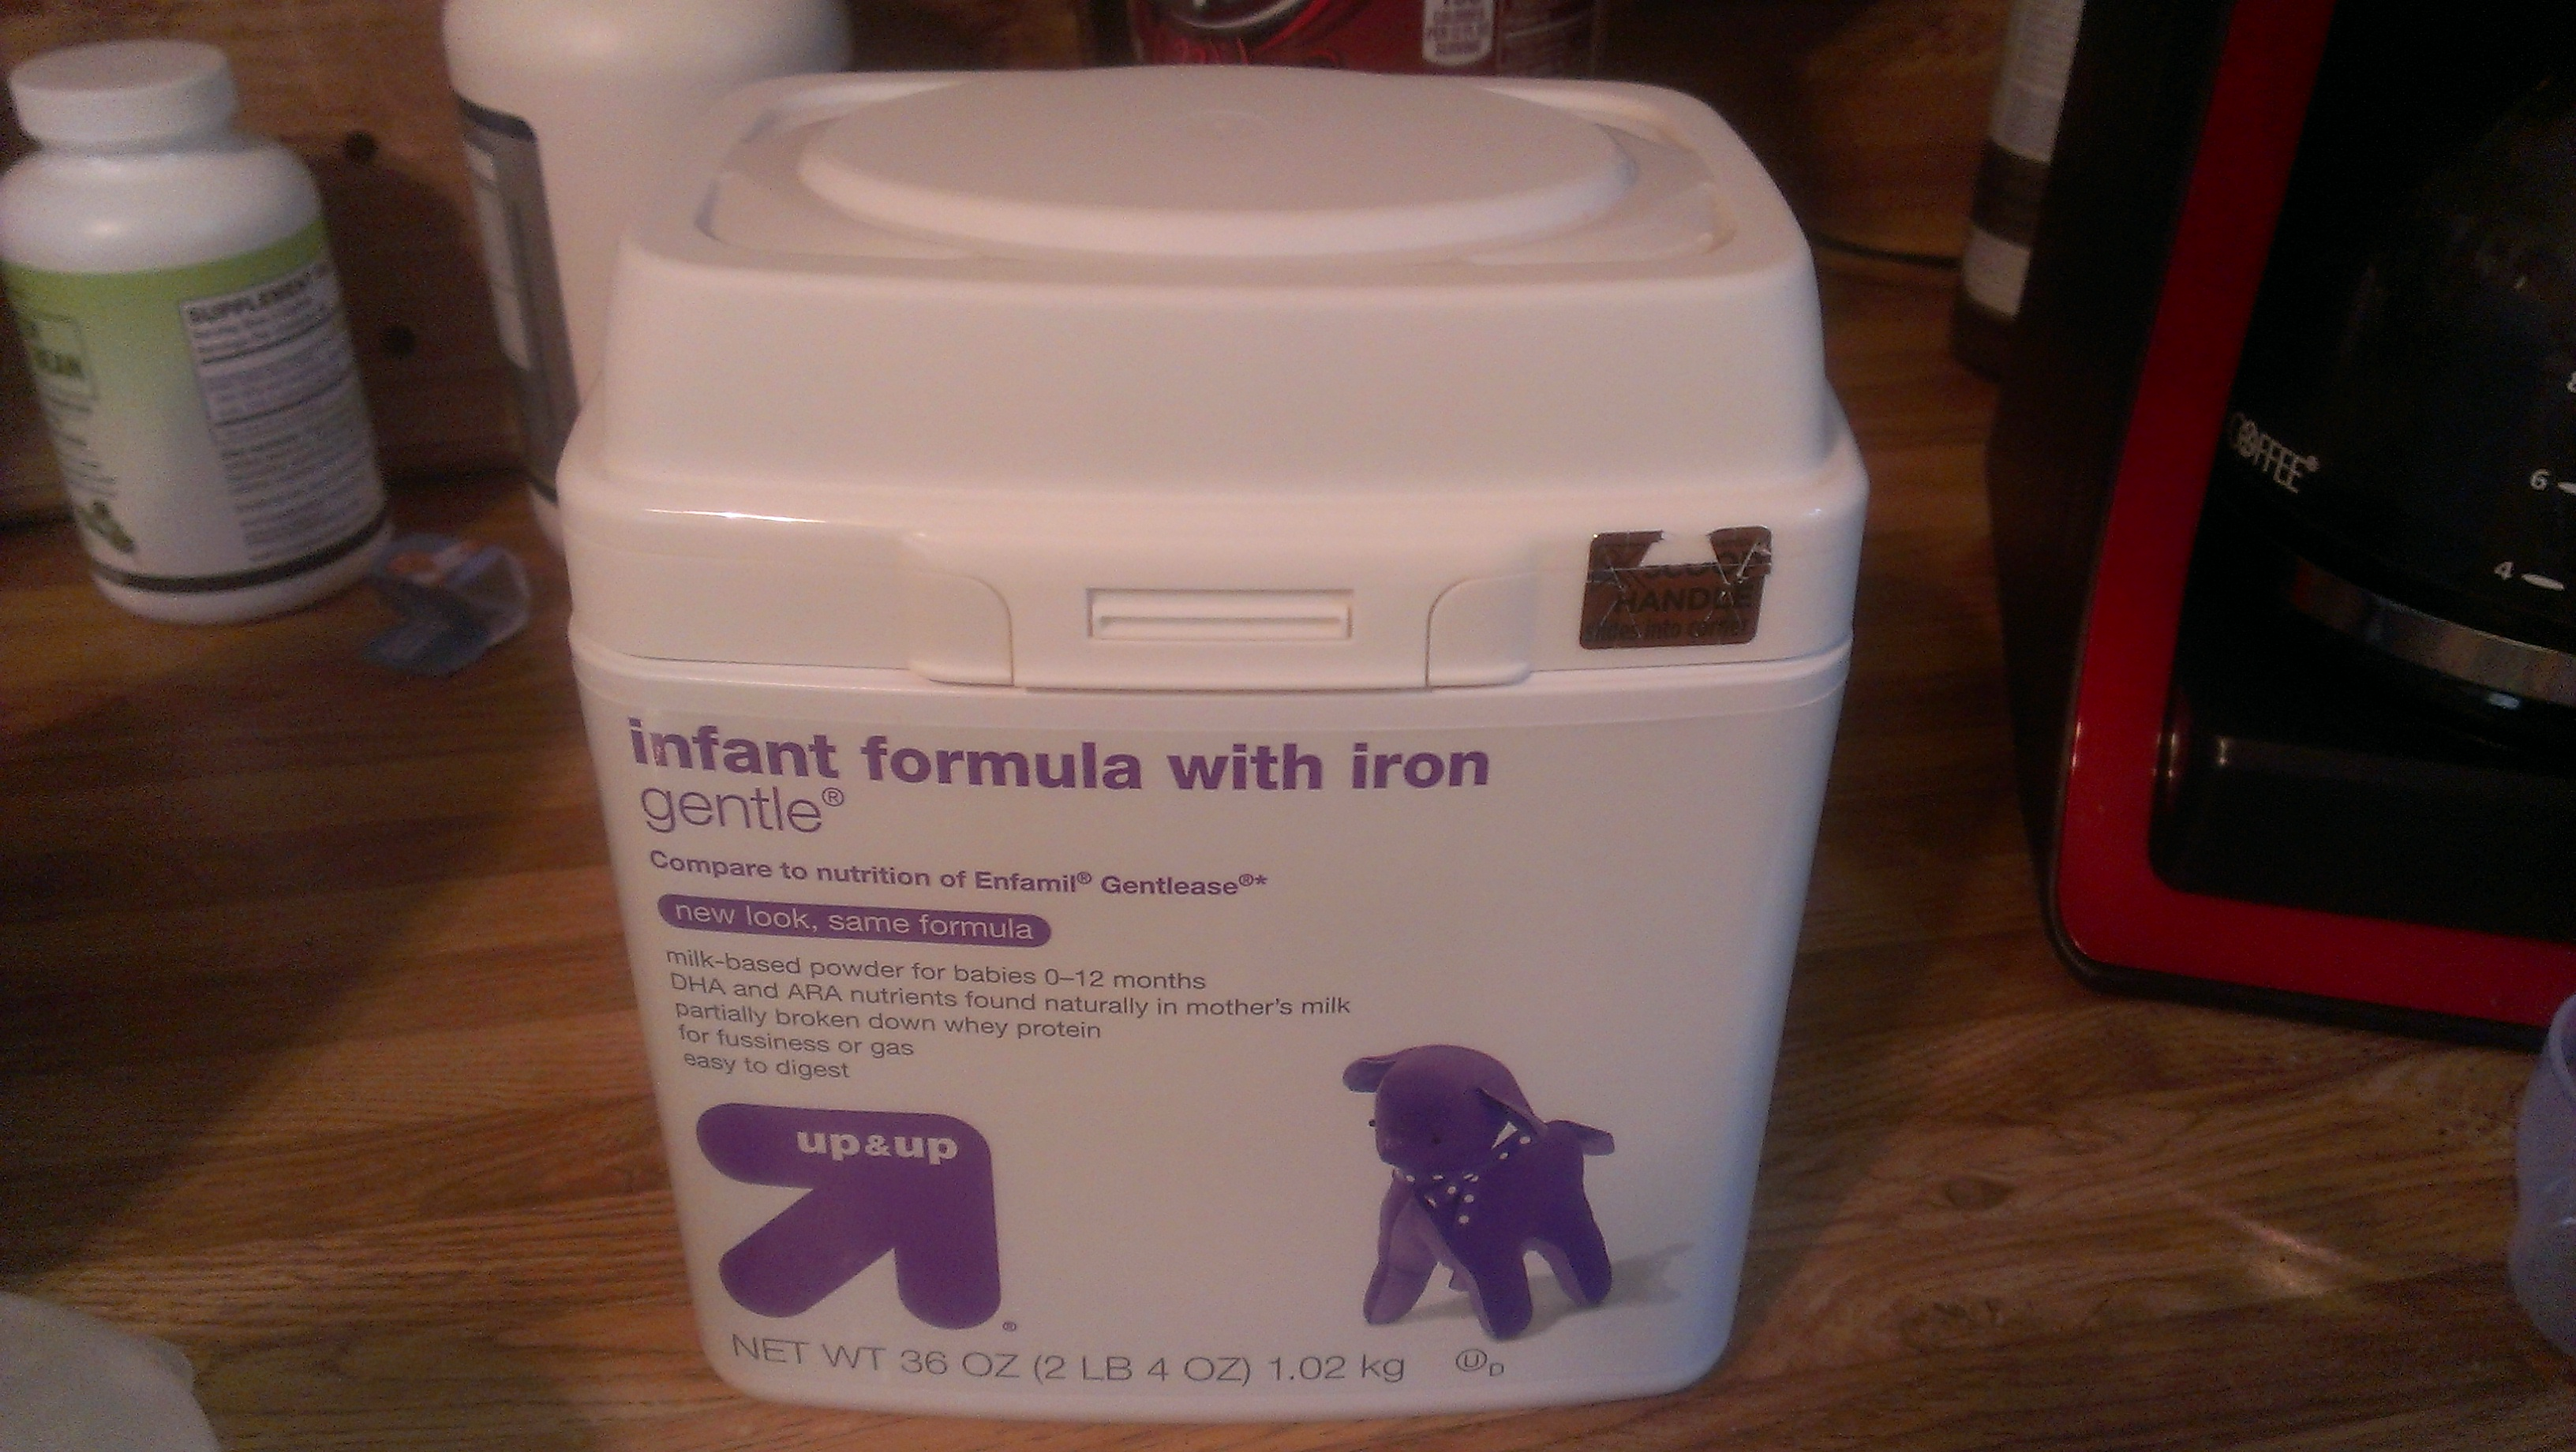 Up & Up gentle infant formula with iron